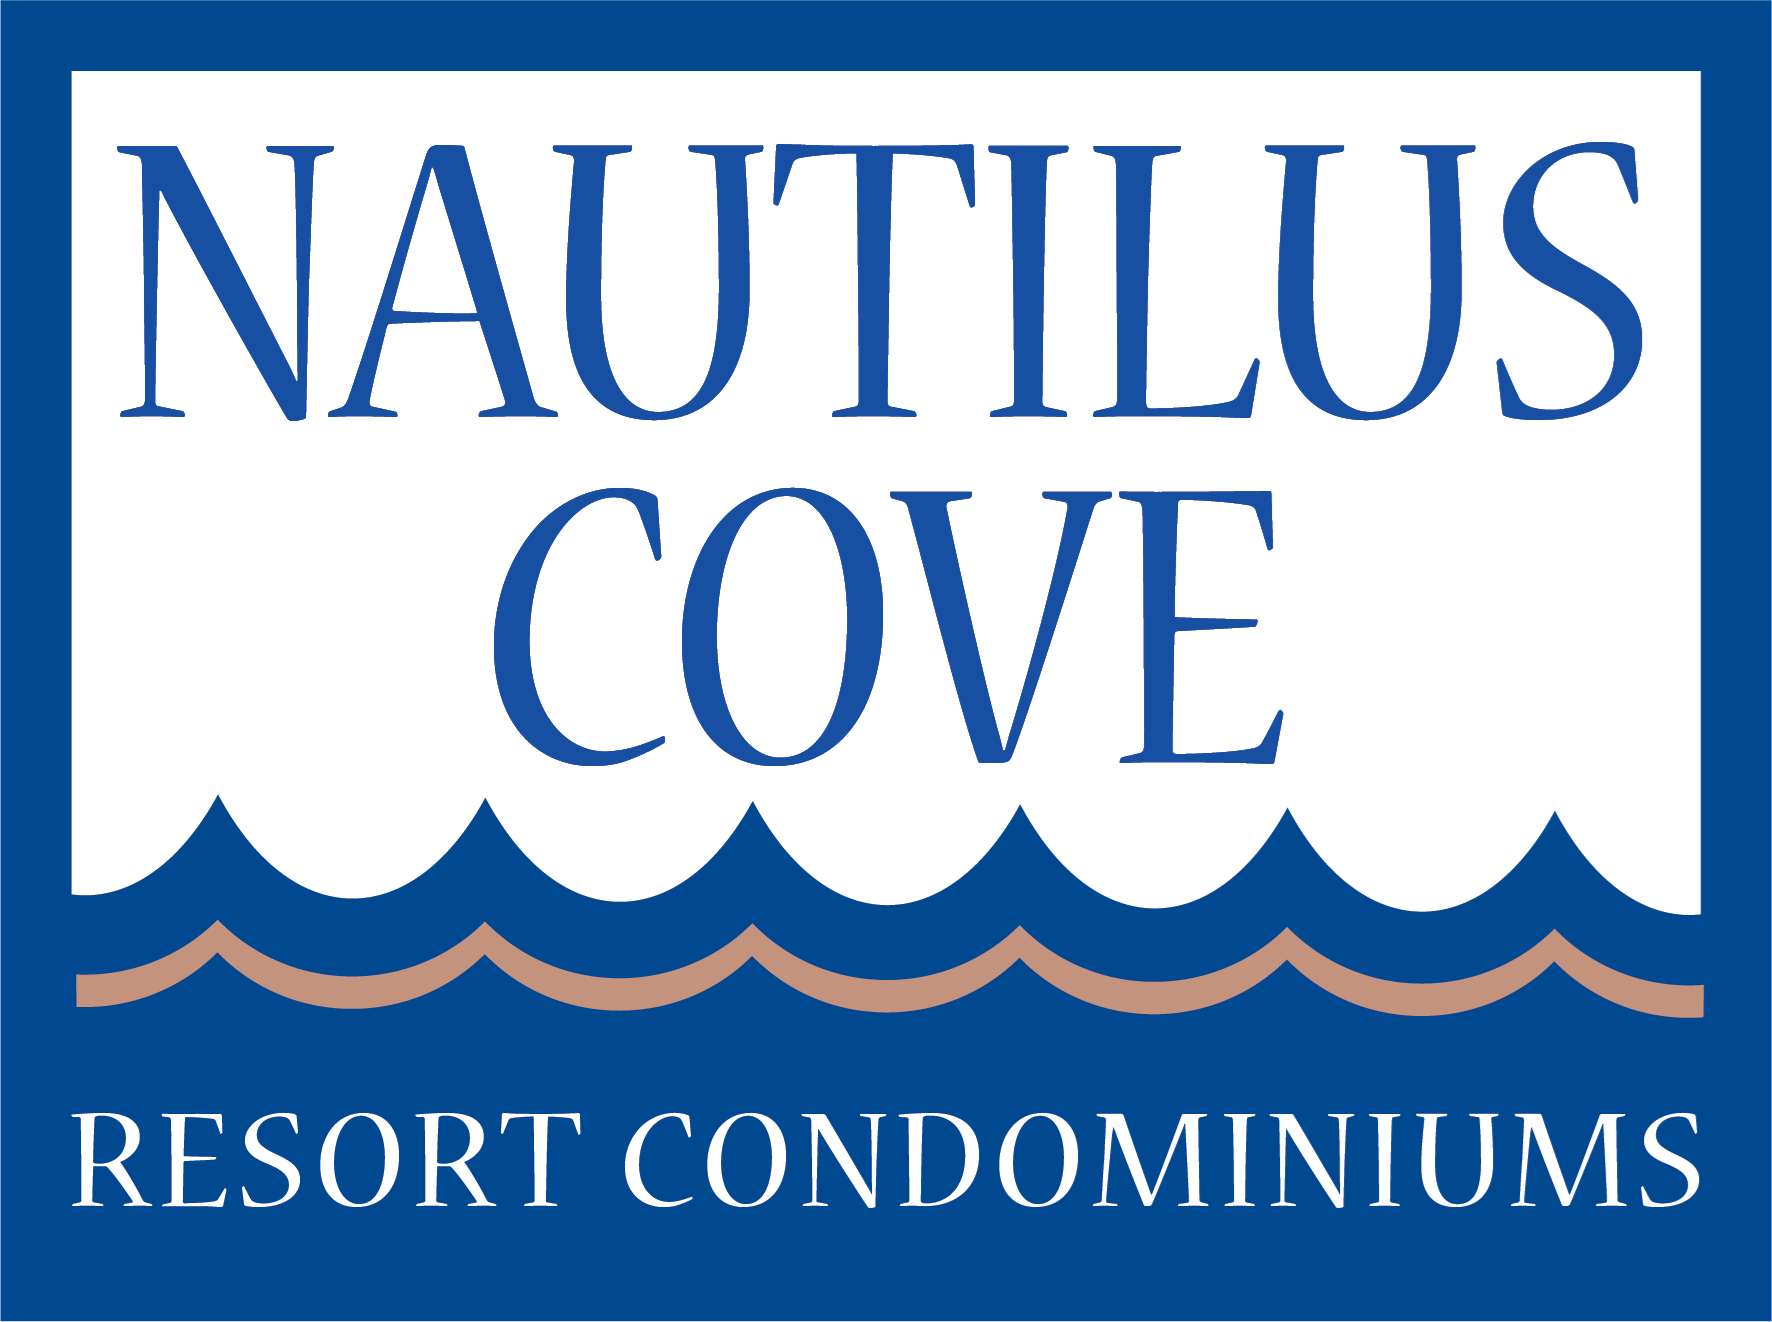 Nautilus Cove Condominiums for rent in Panama City Beach, FL. Make this community your new home or visit other Concord Rents communities at ConcordRents.com. Logo